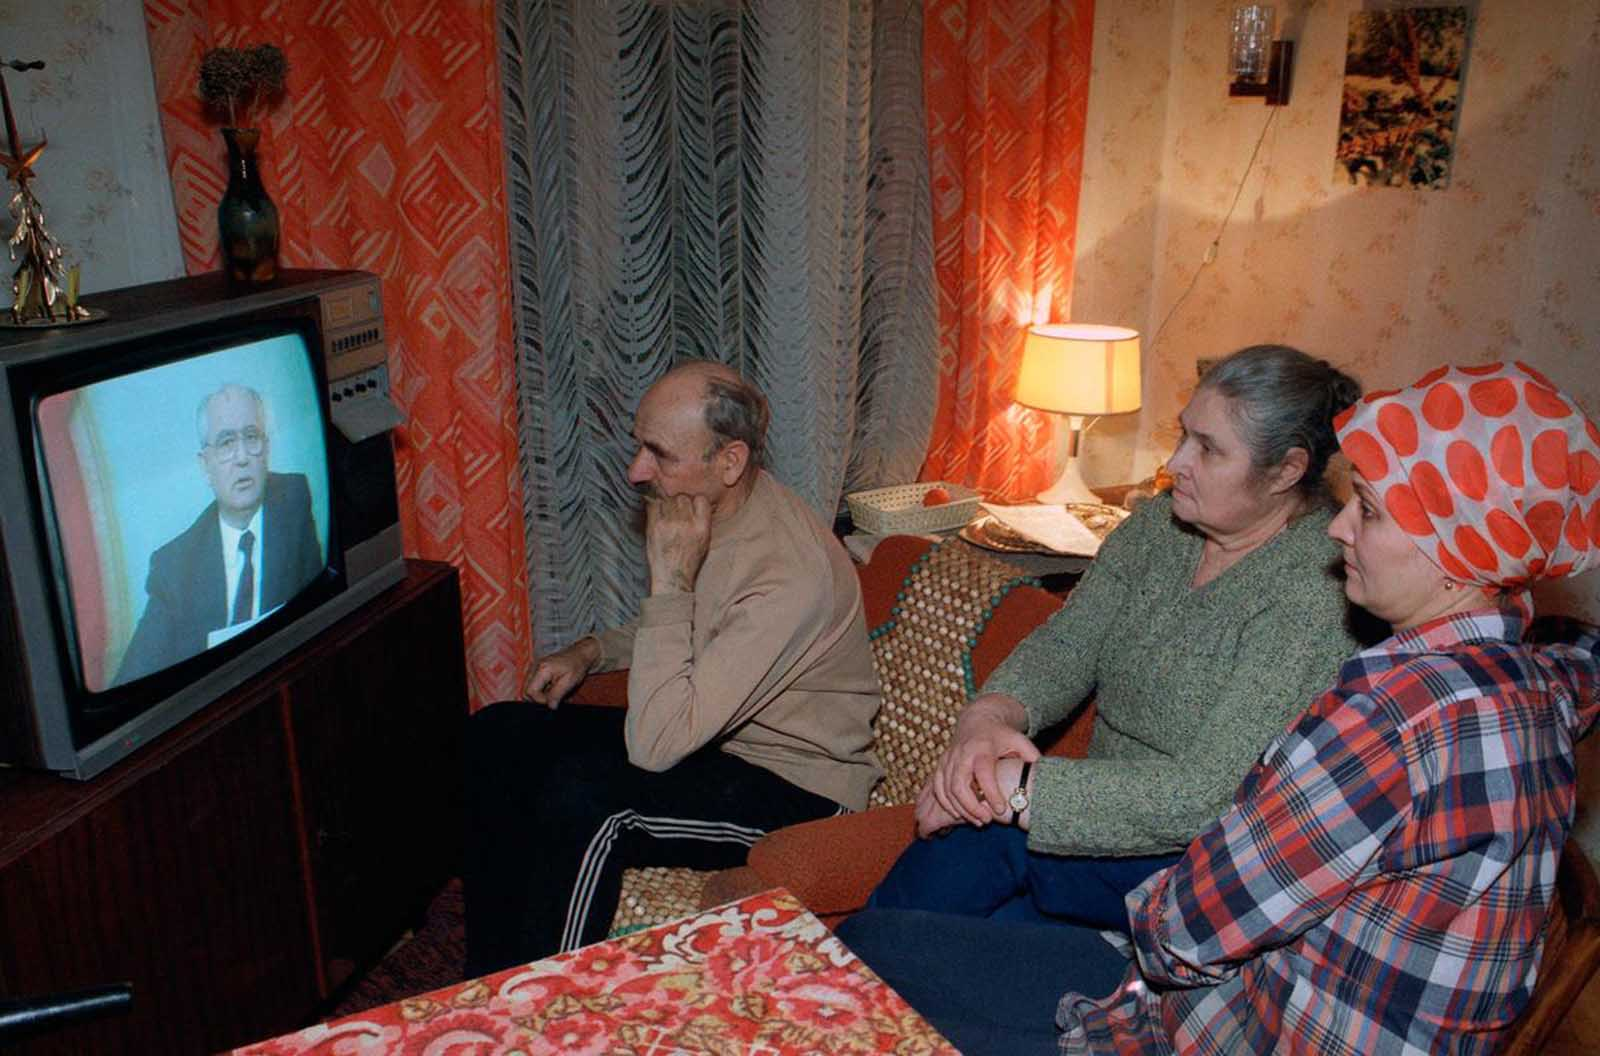 The Musichick family watches Soviet President Mikhail Gorbachev's resignation speech on Soviet television in their downtown Moscow apartment, on December 25, 1991. Gorbachev, whose reforms gave Soviet citizens freedom but ultimately led to the destruction of his nation resigned on as President of a Communist empire that no longer exists.